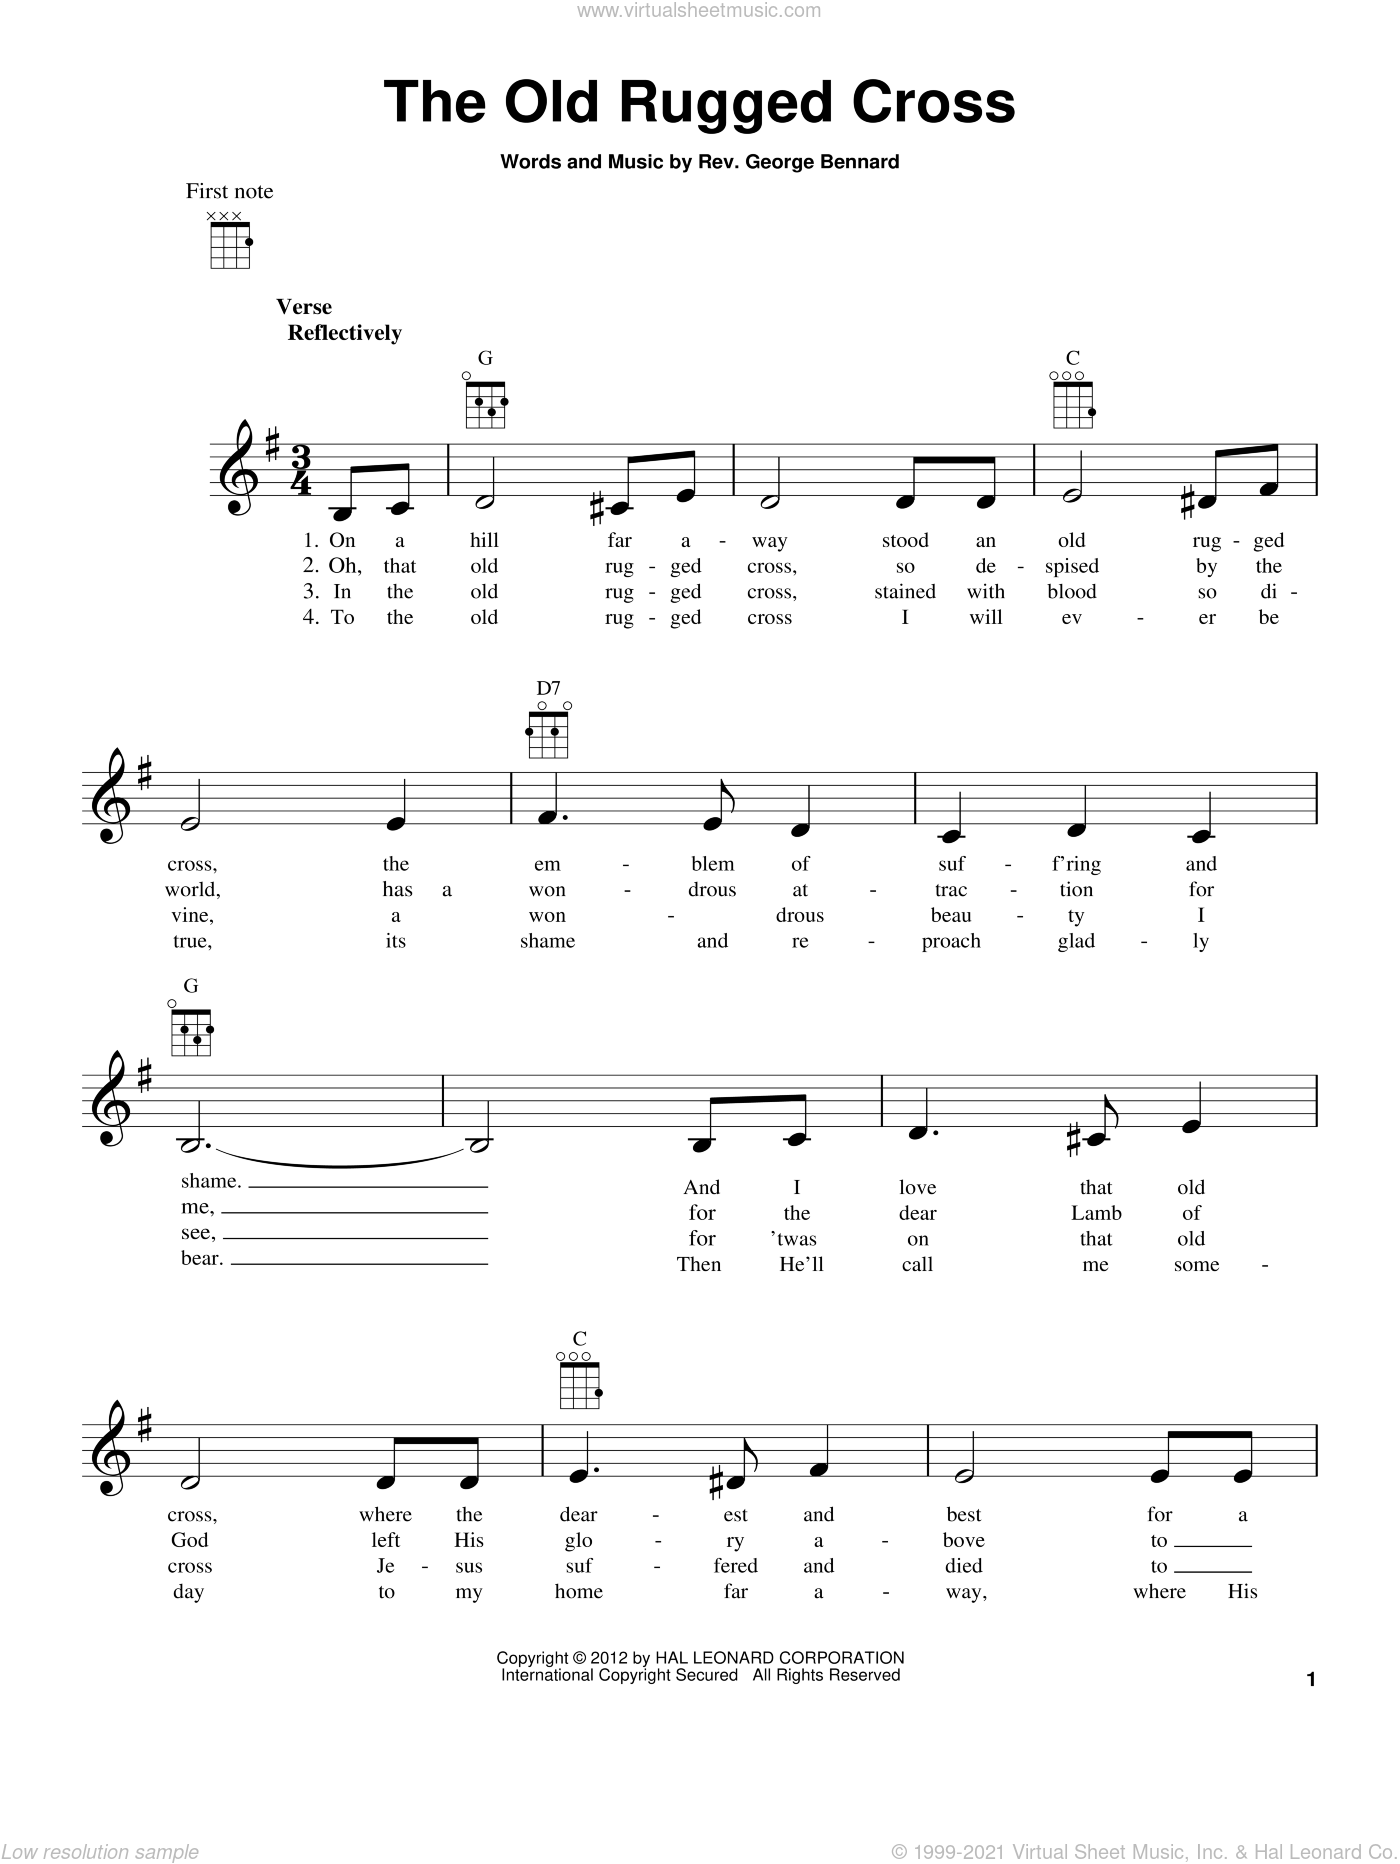 The Old Rugged Cross sheet music for ukulele by Rev. George Bennard, intermediate skill level